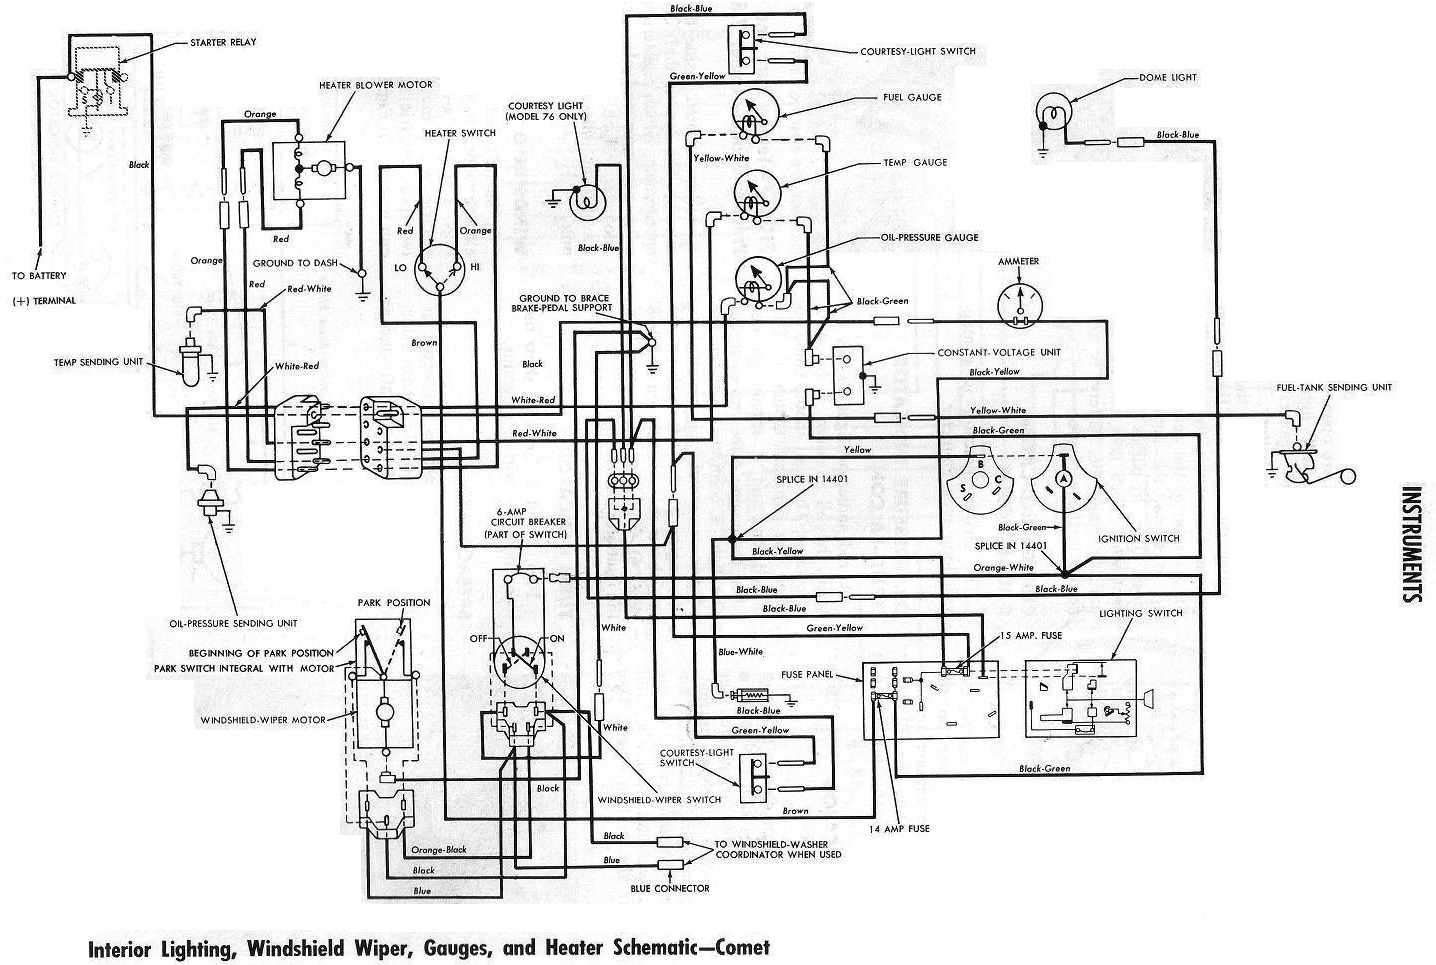 wiring diagram for 1963 mercury comet v8 1962 ford falcon